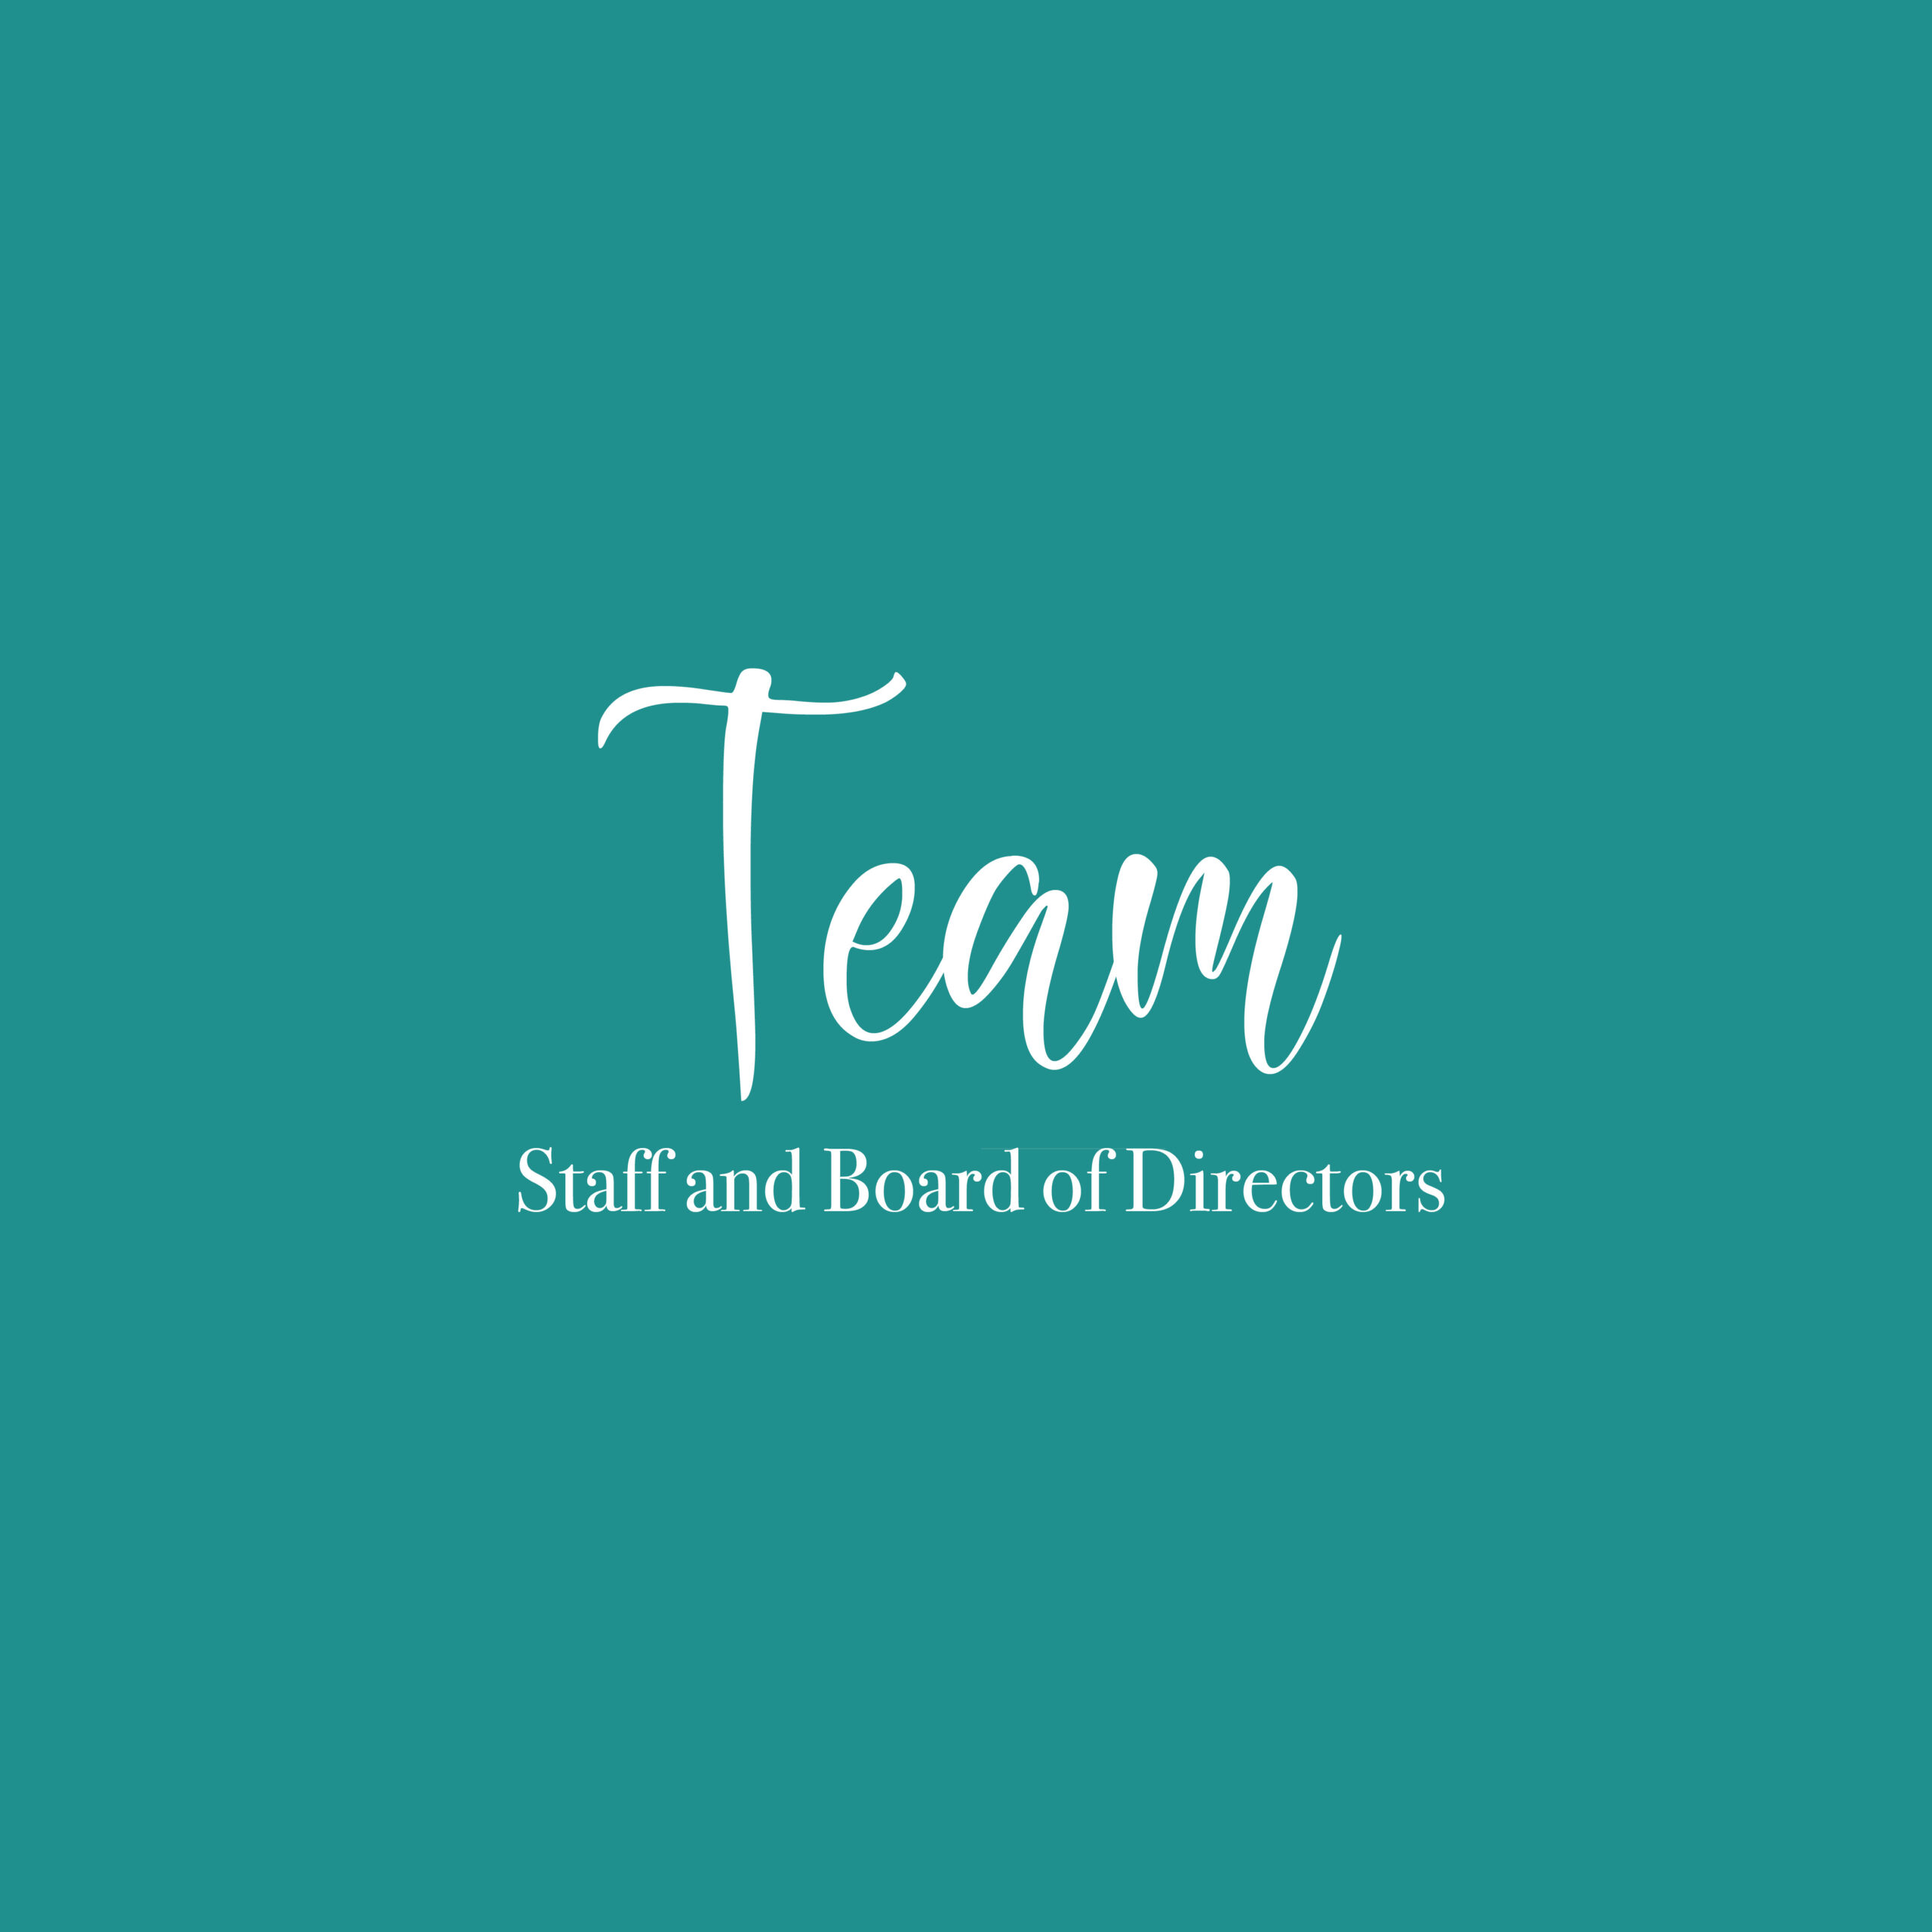 our staff and board of directors